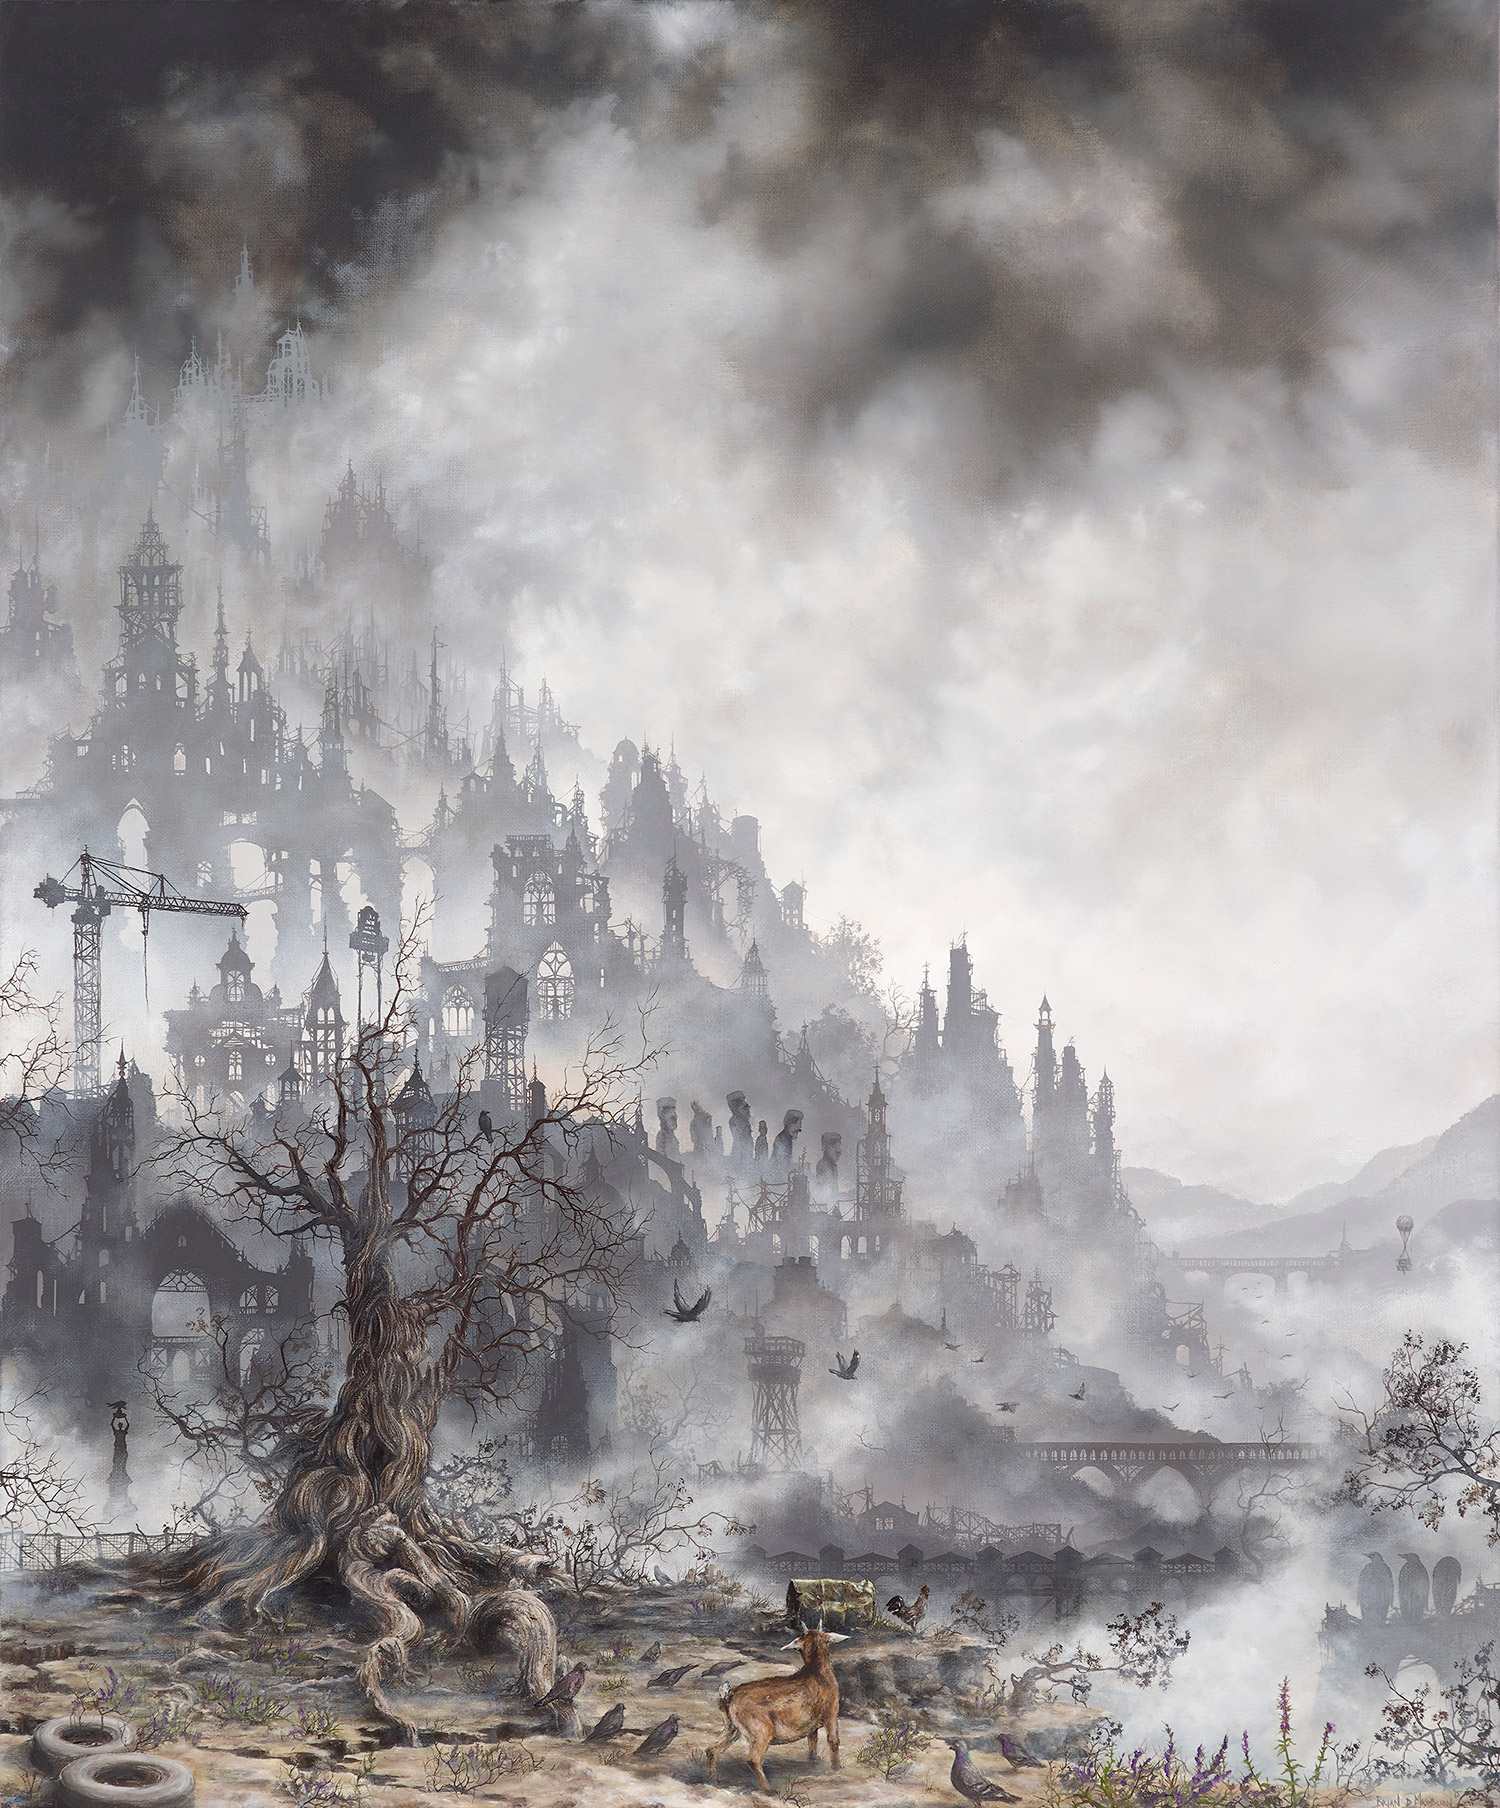 Brian Mashburn - A Wealth of Notions